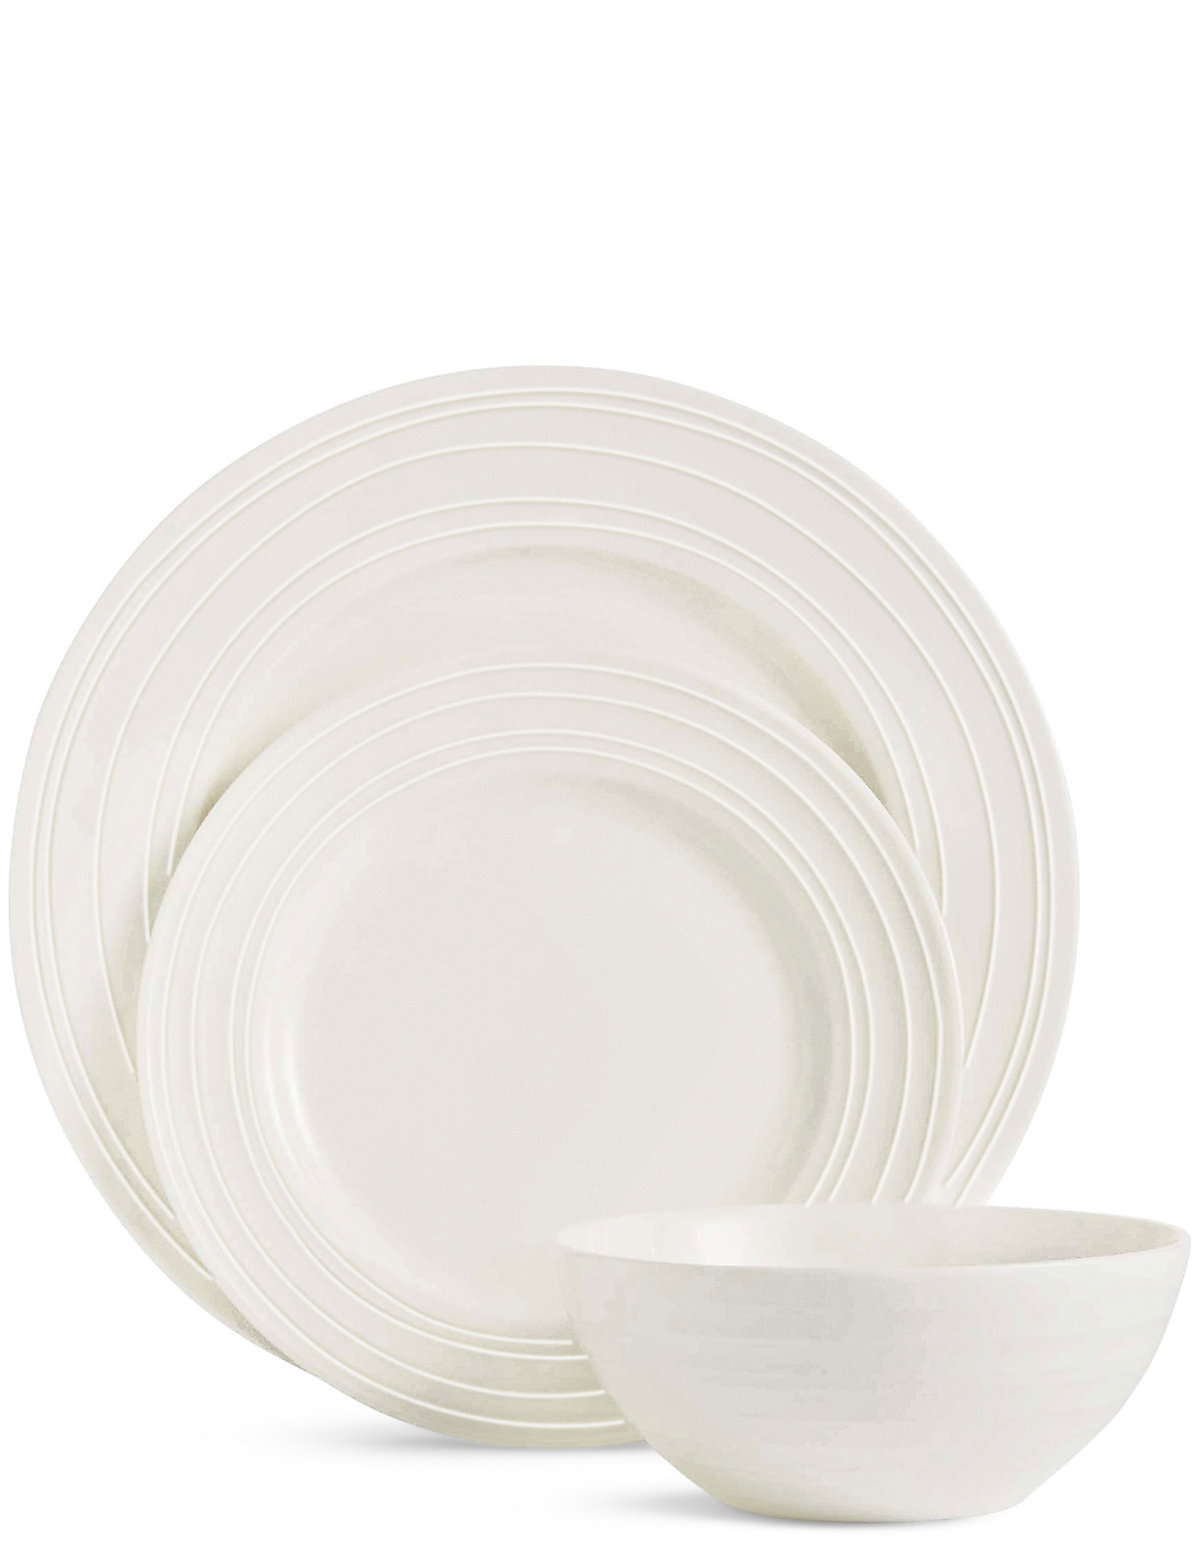 Image of 12 Piece Metro Fine China Dinner Set